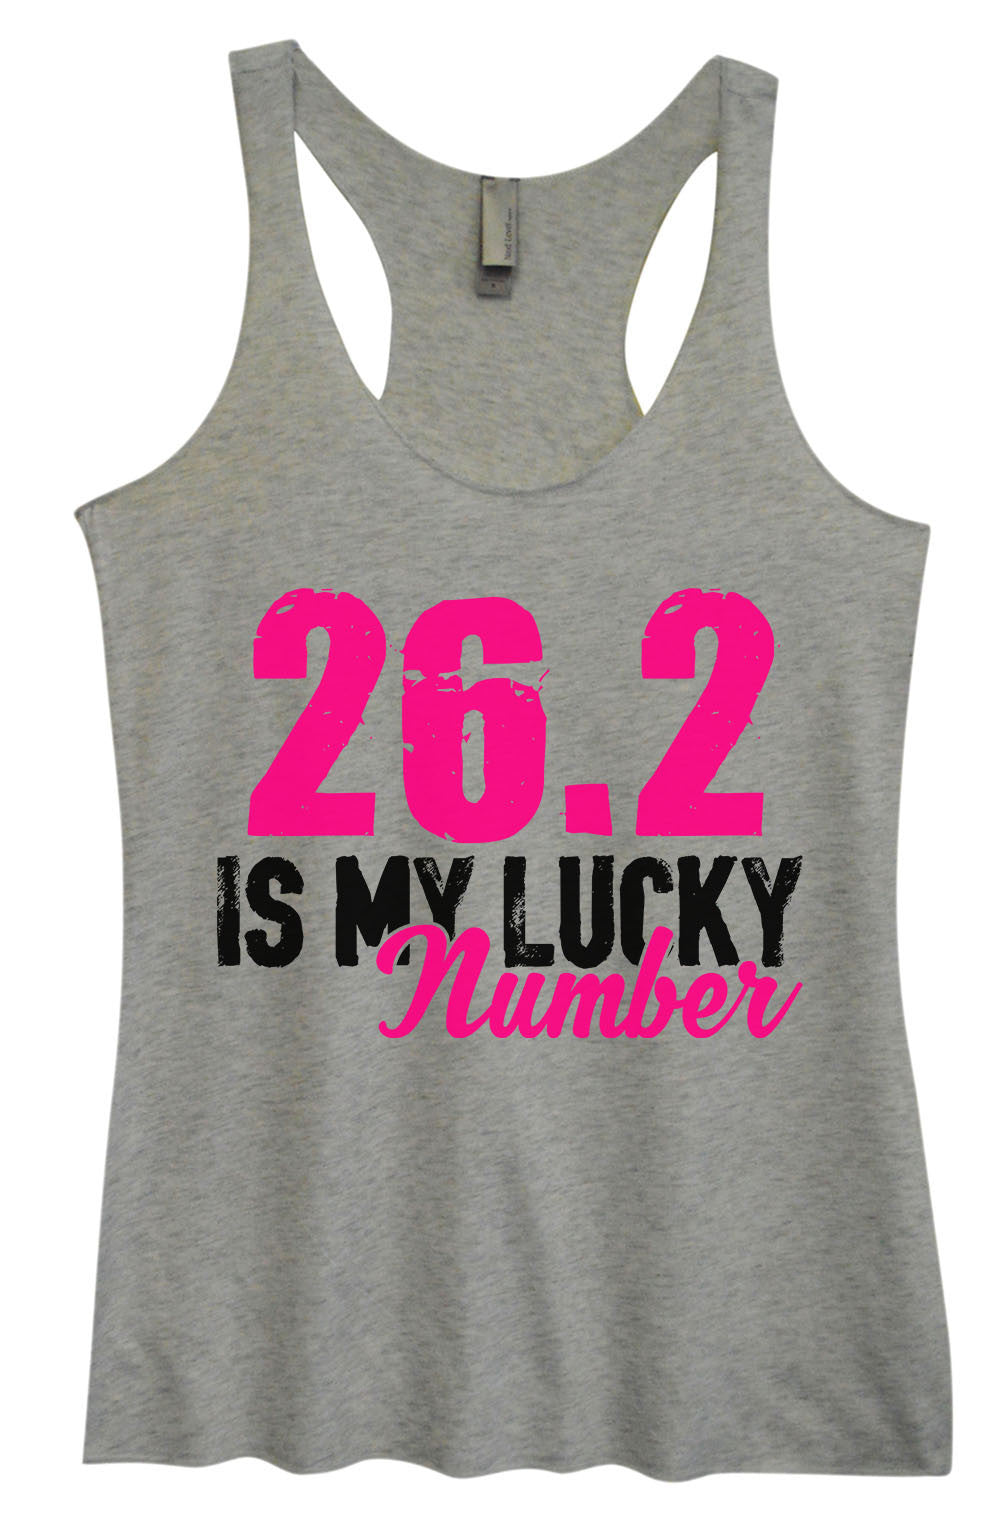 Womens Fashion Triblend Tank Top - 26.2 Is My Lucky Number - Tri-1382 - Funny Shirts Tank Tops Burnouts and Triblends  - 1